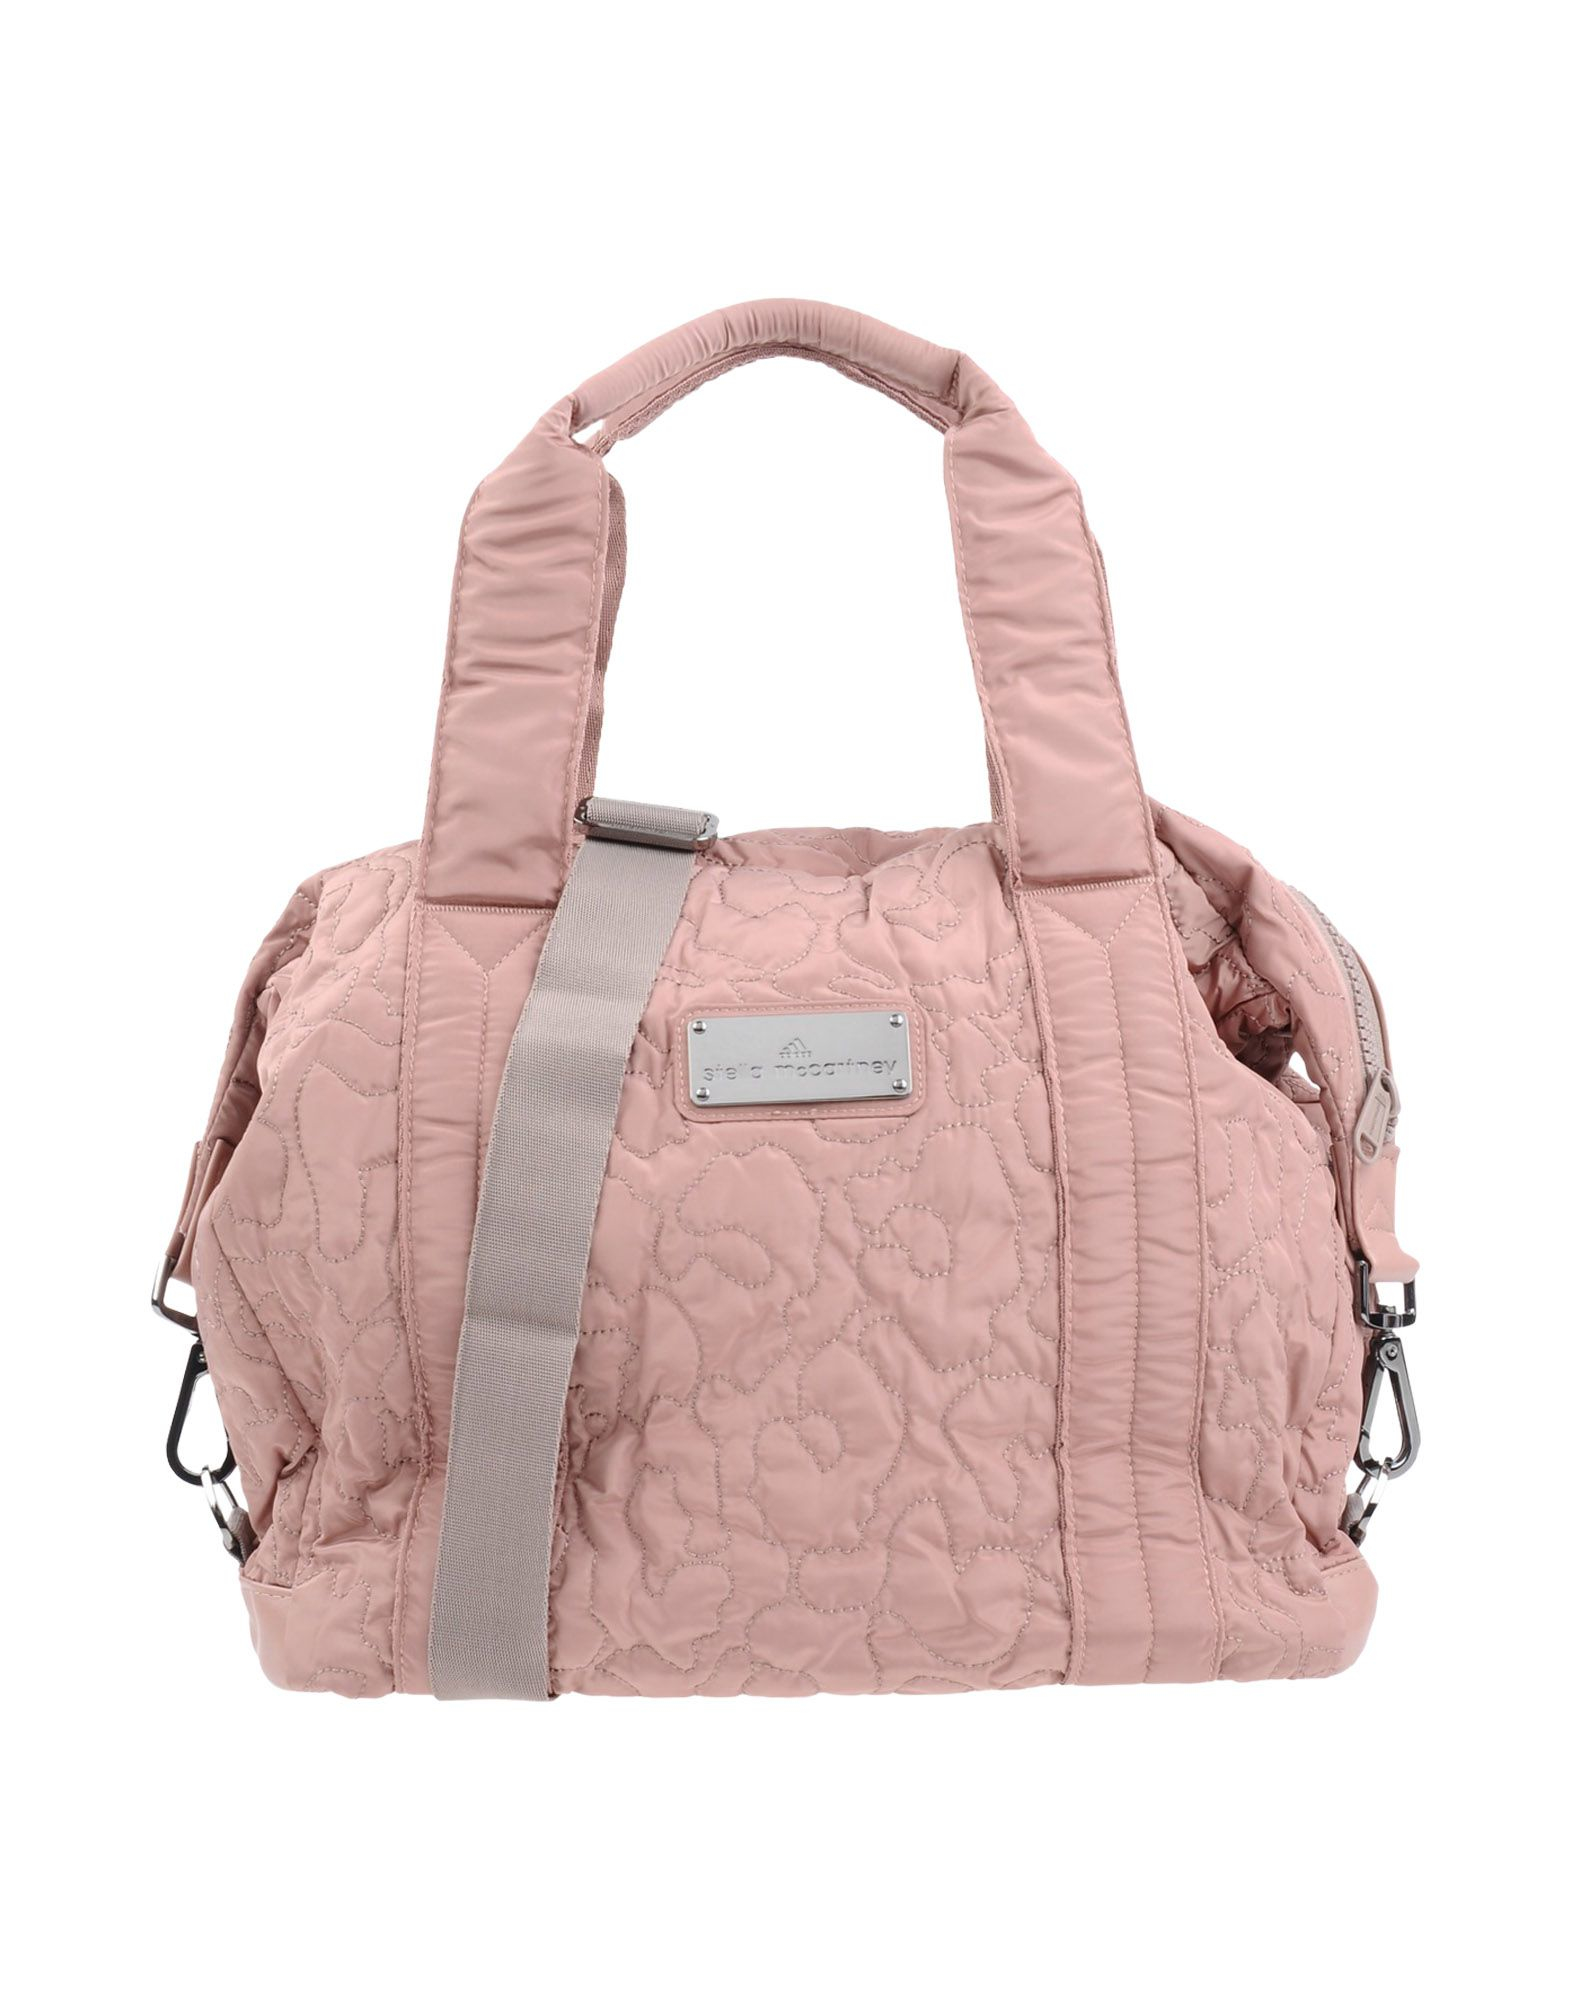 Lyst - adidas By Stella McCartney Medium Quilted Gym Bag in Pink 4515d2ddf5b32